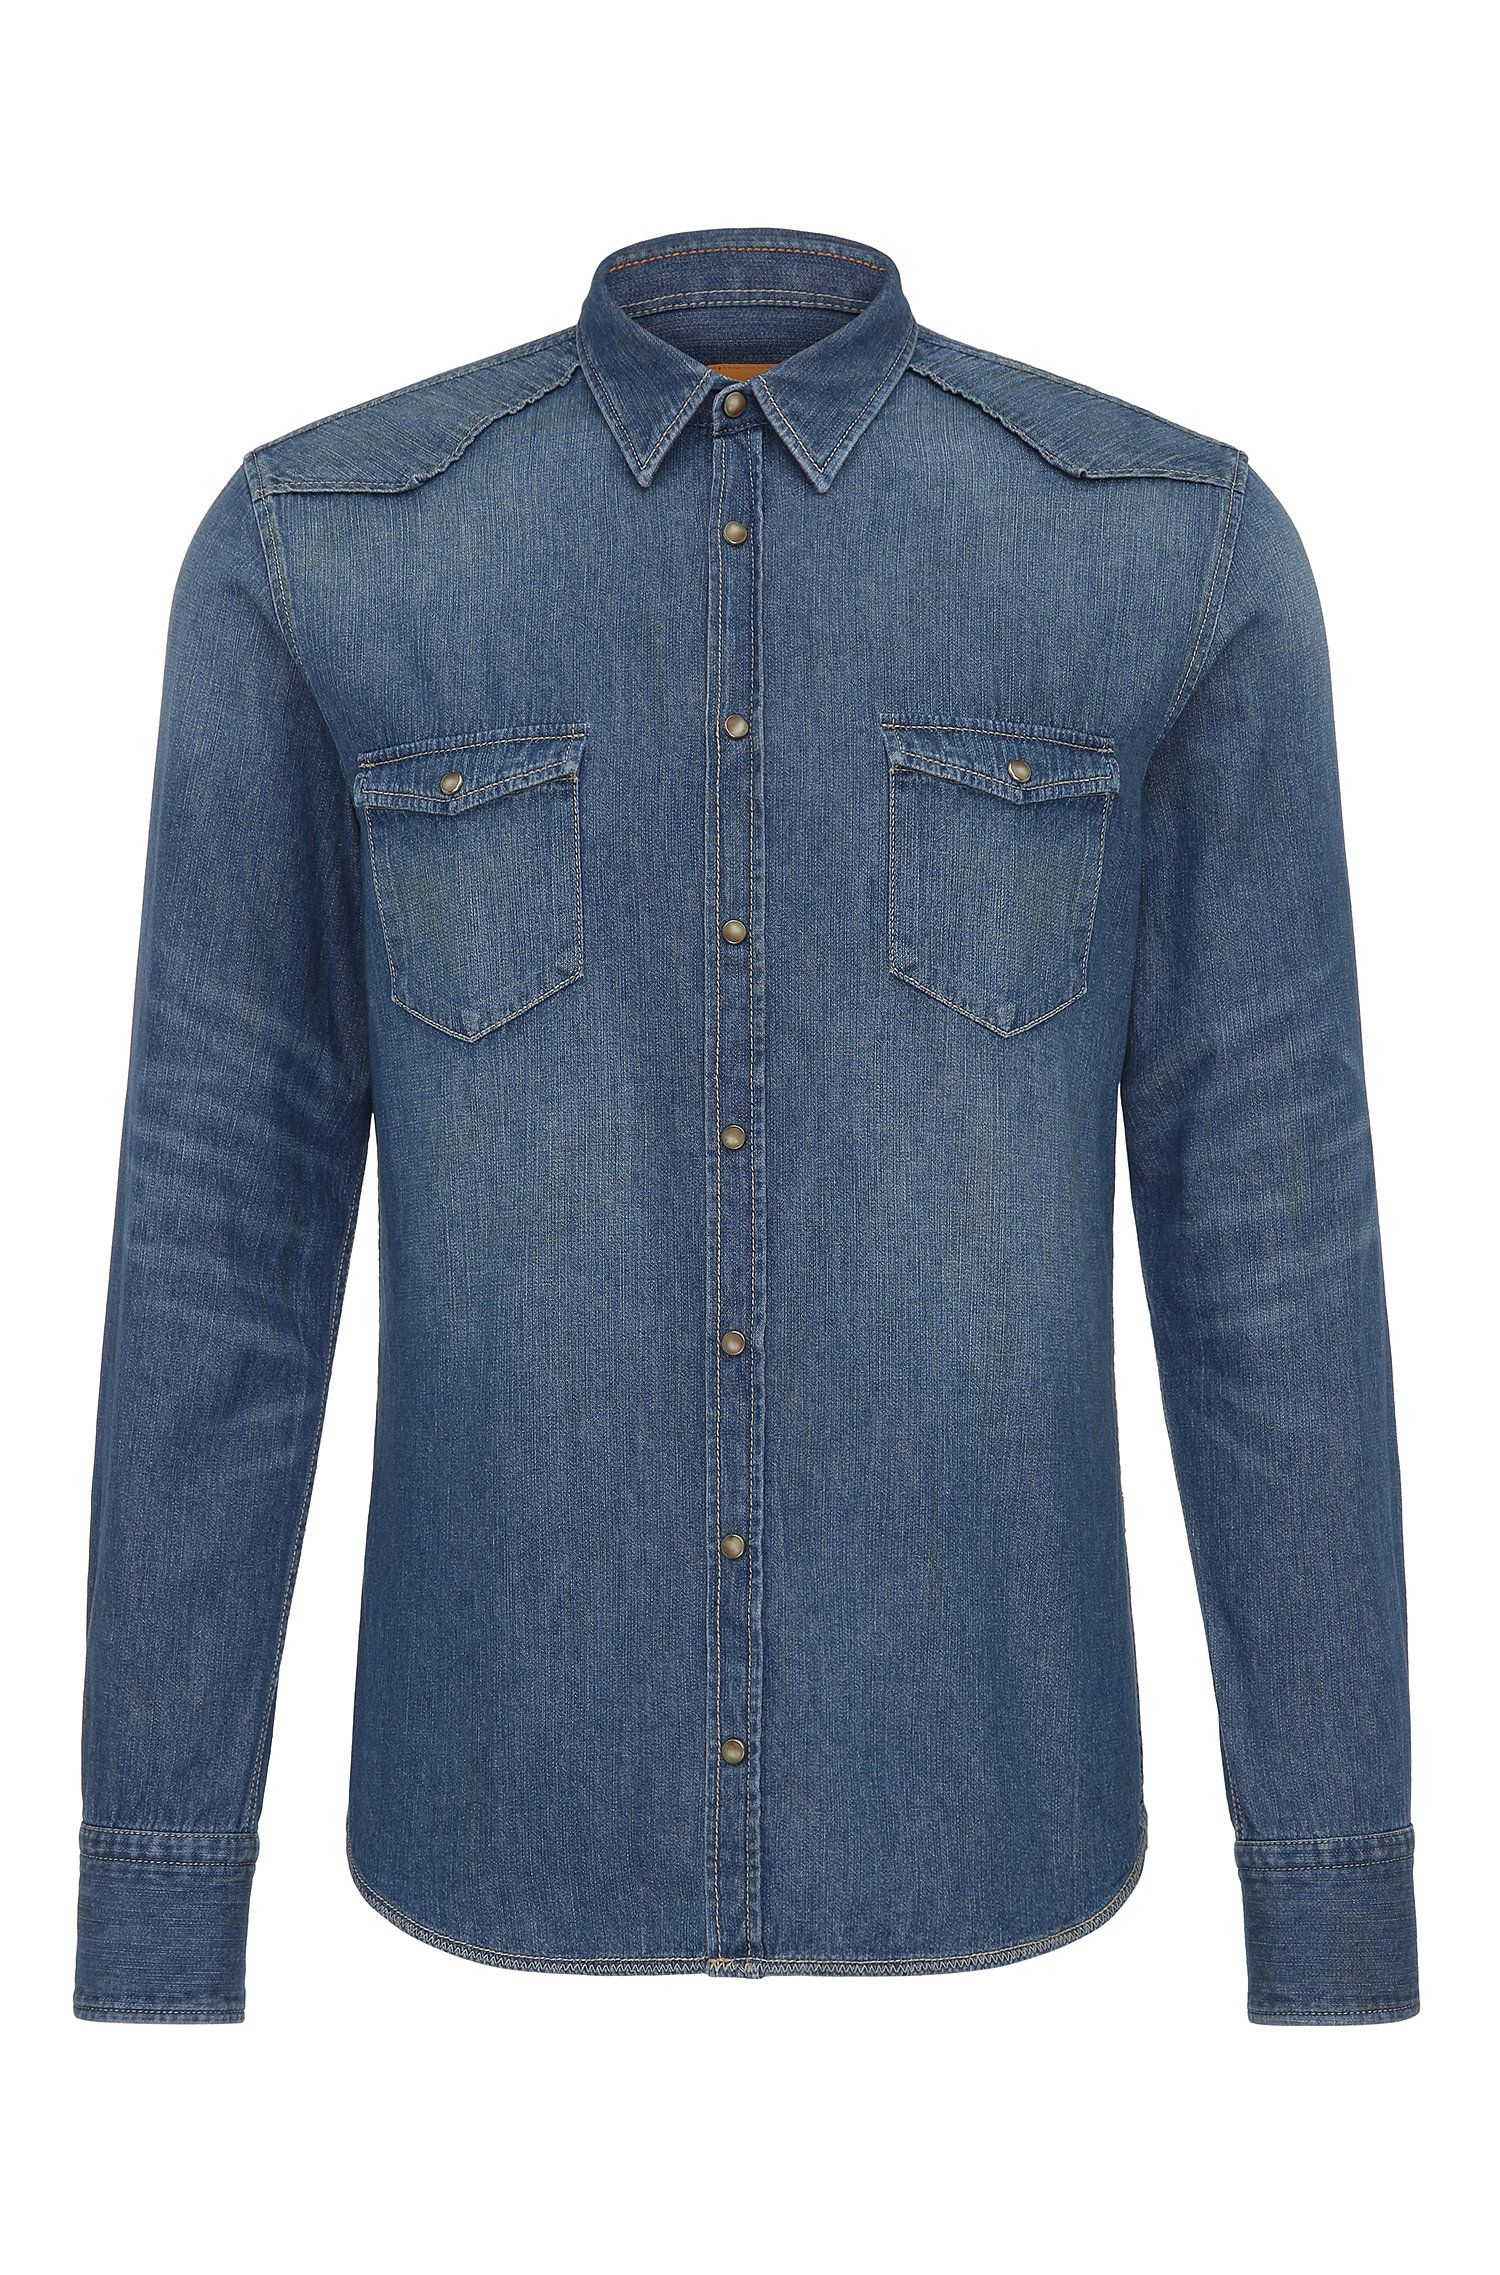 Camisa slim fit del Oeste en algodón denim